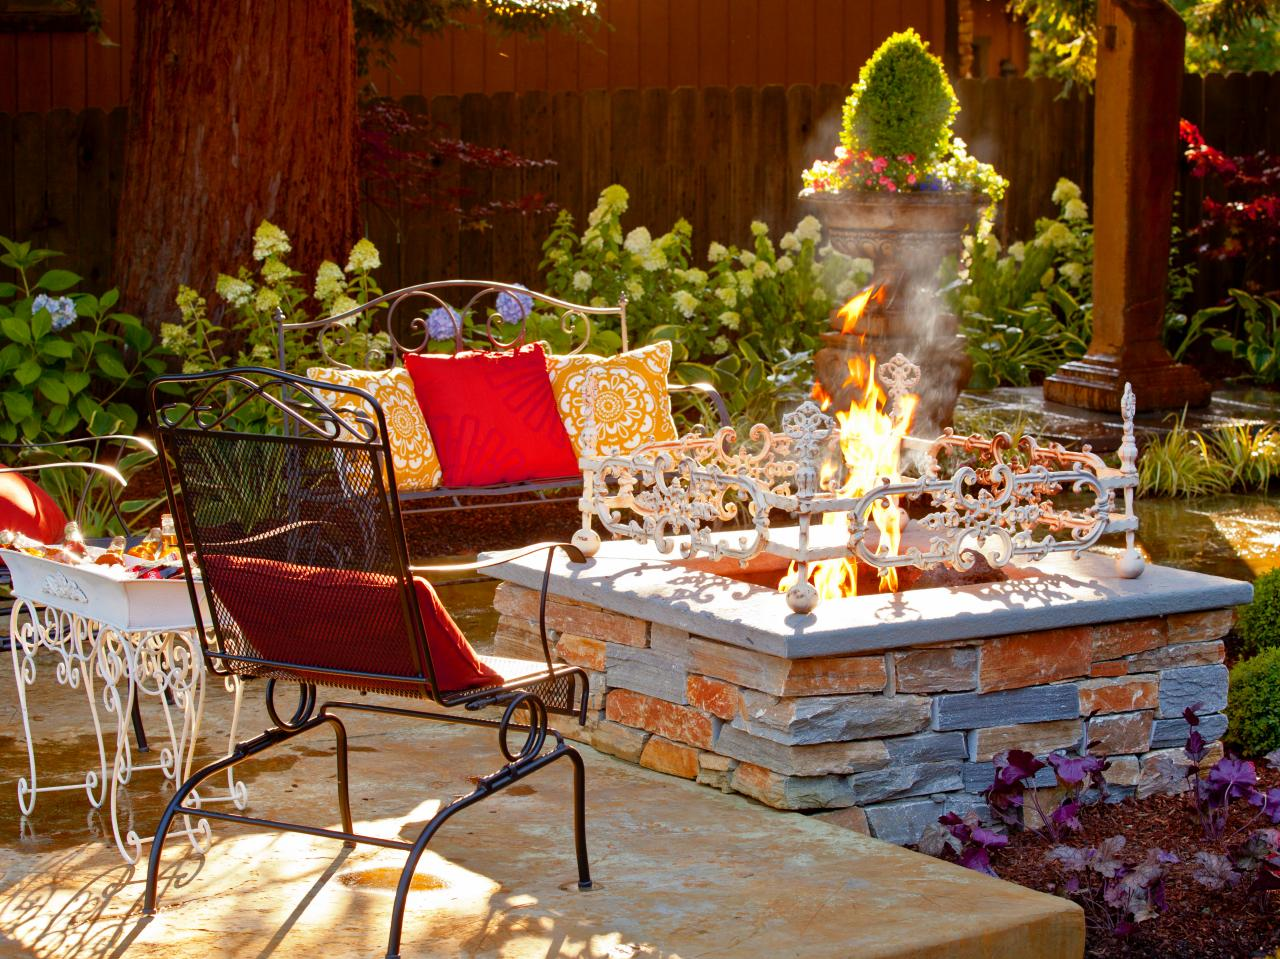 Backyard Landscaping Ideas With Fire Pit fire pit patio design ideas 16 5 Fit For A Fairy